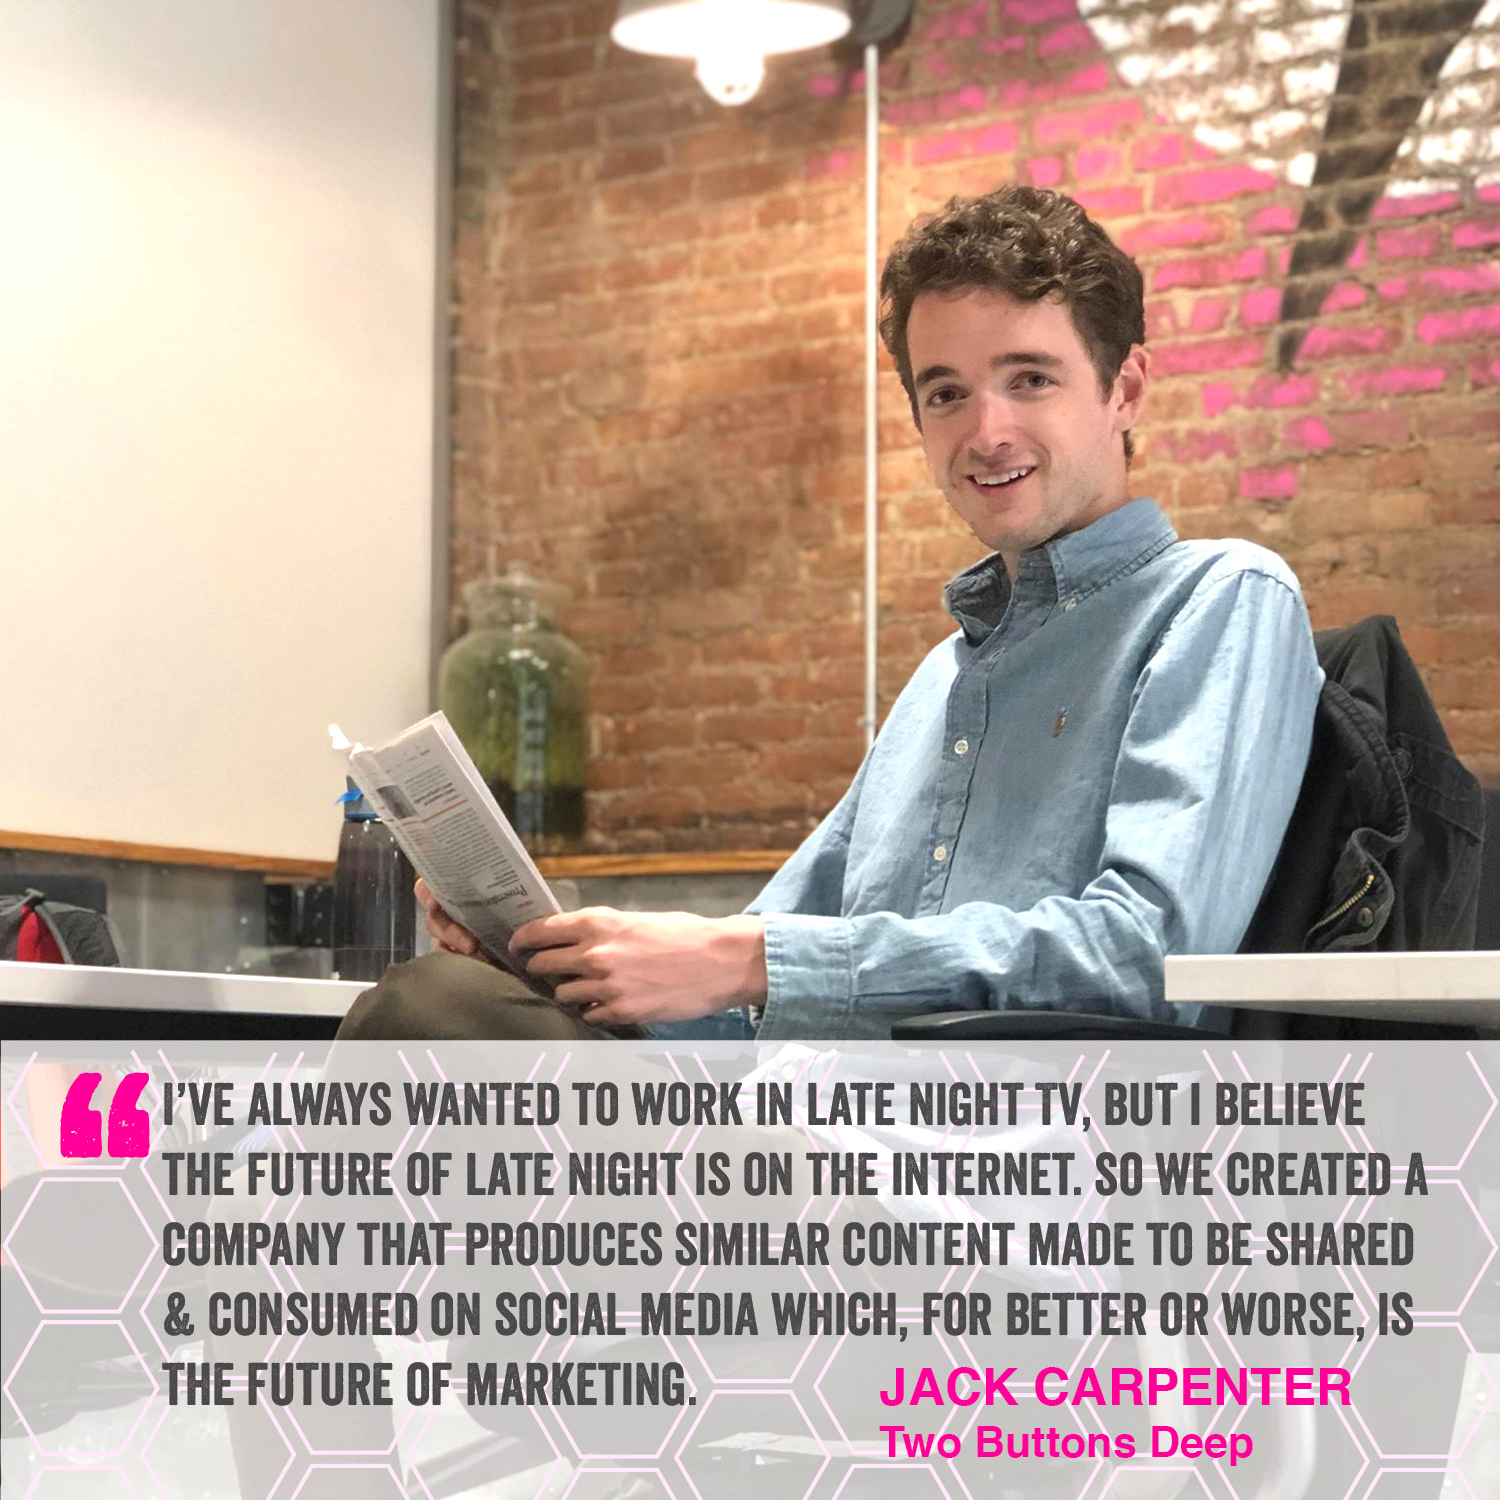 """""""I've always wanted to work in late night TV, but I believe the future of late night is on the internet. So we created a copany that produces similar content made to be shared & consumed on social media which, for better or worse, is the future of marketing."""" Jack Carpenter - Two Buttons Deep"""